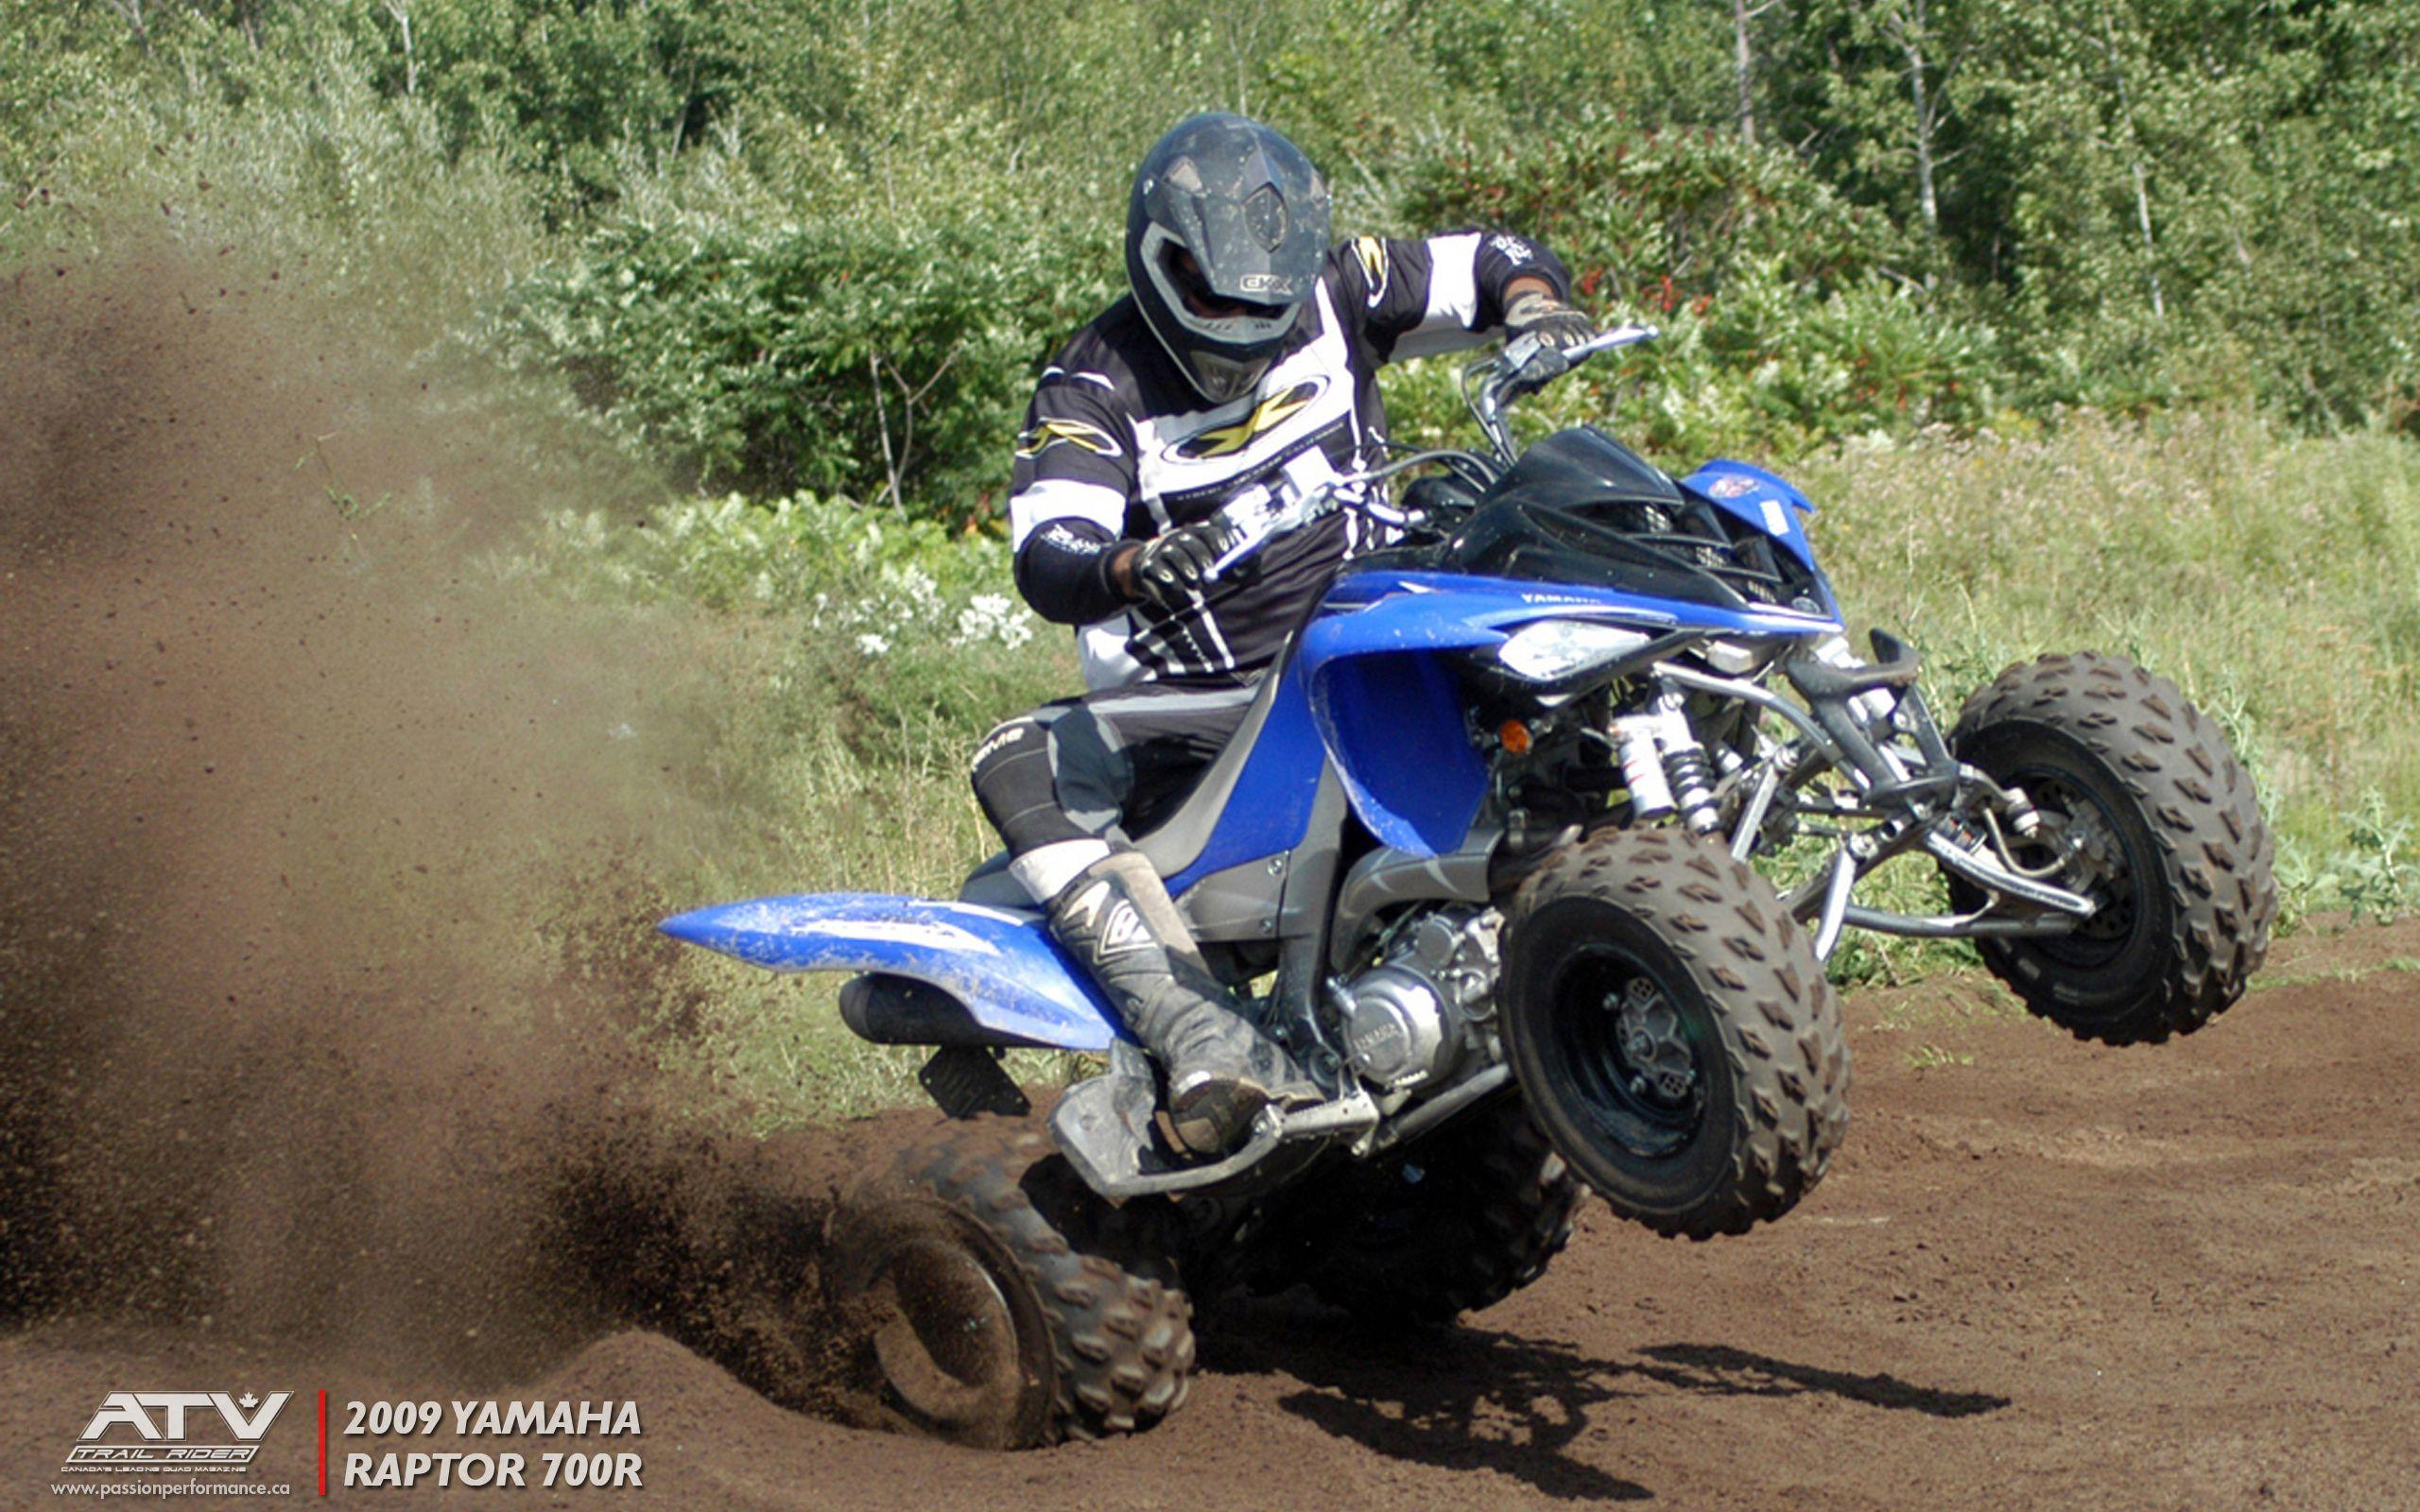 YAMAHA RAPTOR atv quad offroad motorbike bike dirtbike f wallpapers